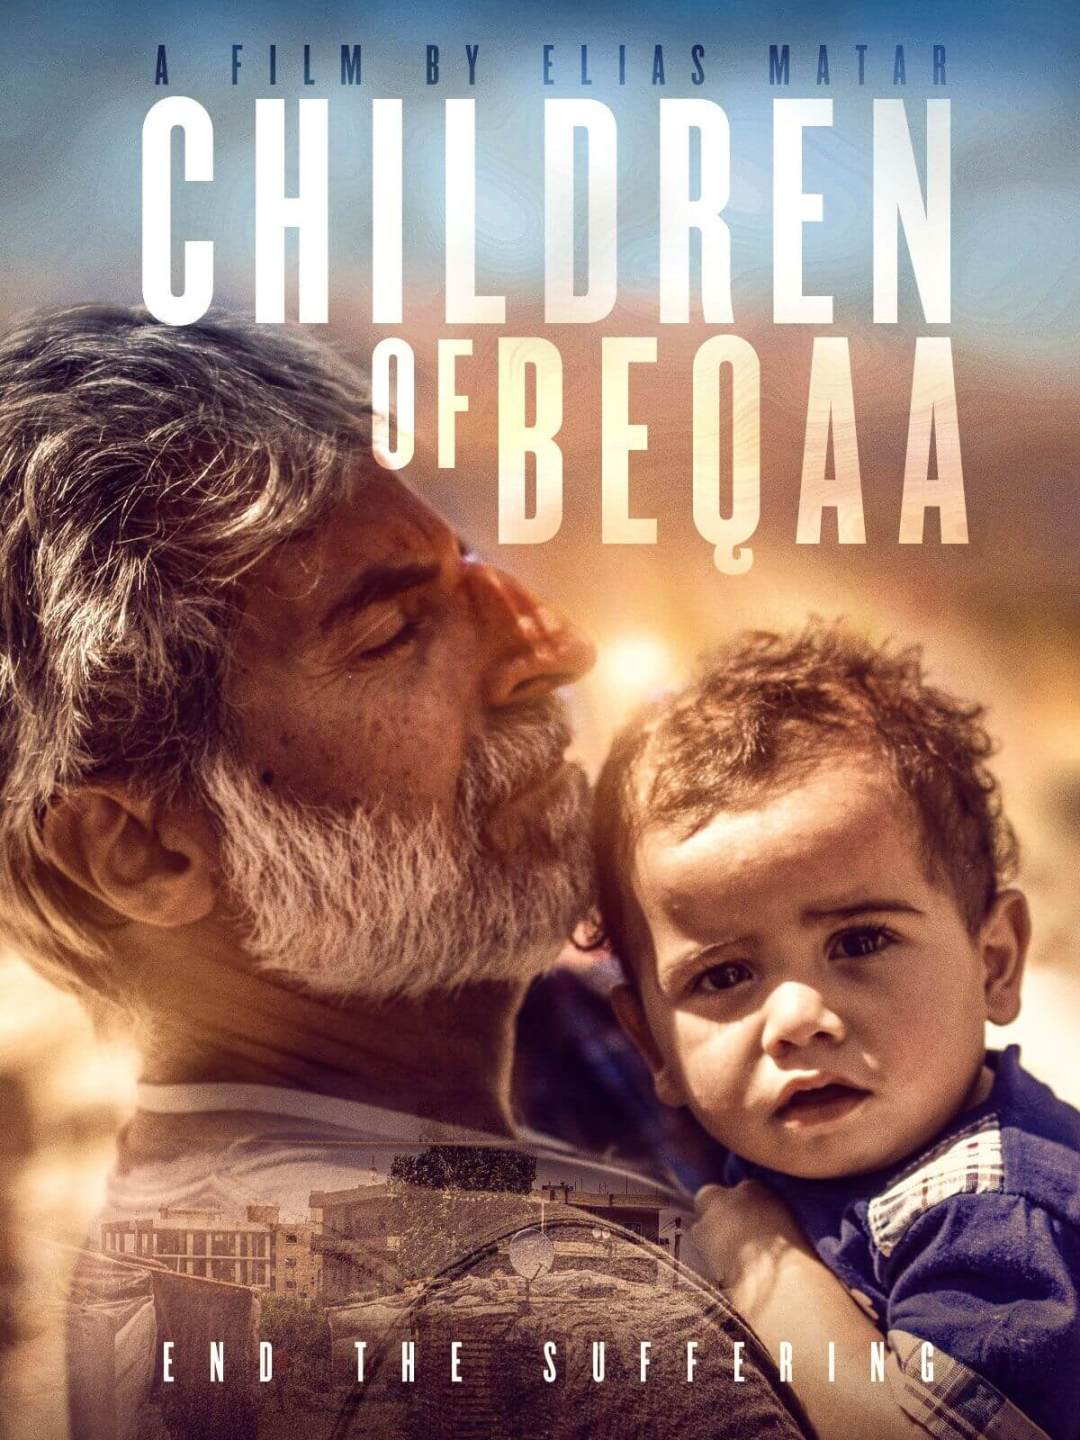 CHILDREN OF BEQAA